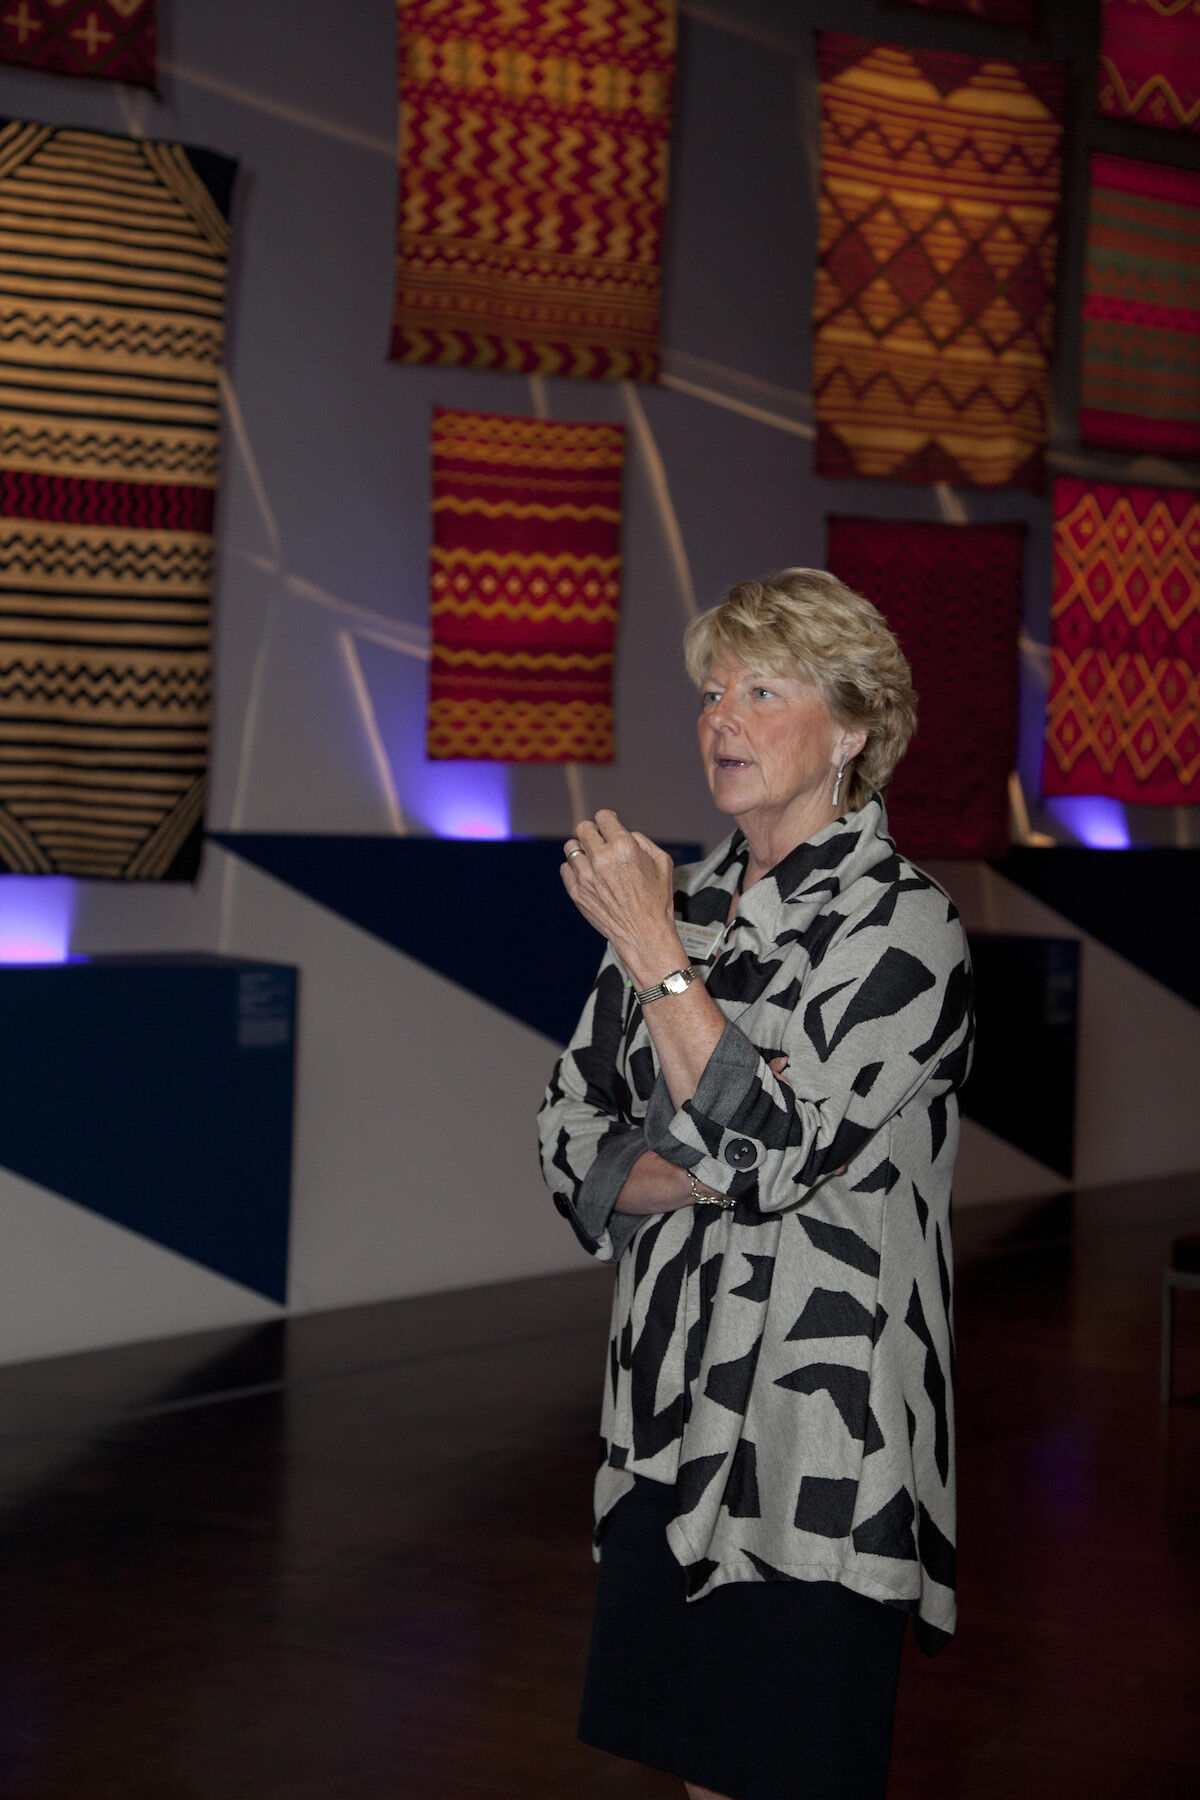 """Nancy Blomberg during the media preview of """"Red, White and Bold: Masterworks of Navajo Design, 1840–1870"""" at the Denver Art Museum in 2013. Photo courtesy the Denver Art Museum."""